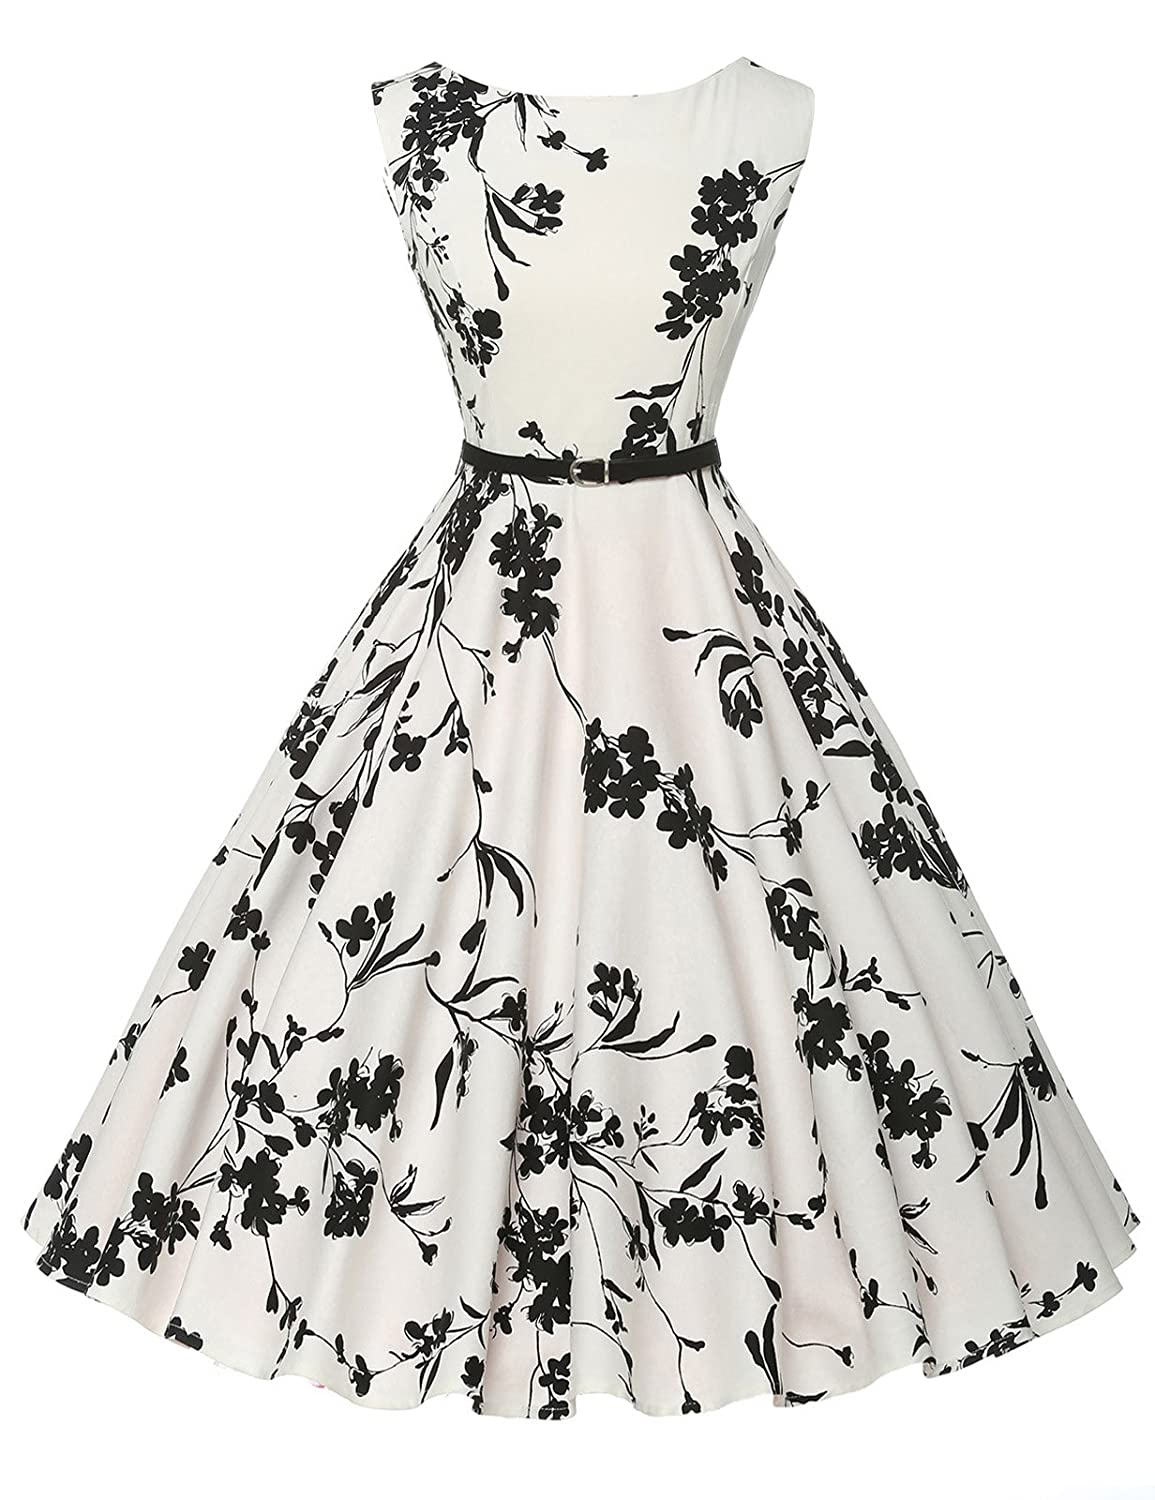 Swing Dance Dresses | Lindy Hop Dresses & Clothing BoatNeck Sleeveless Vintage Tea Dress with Belt $30.99 AT vintagedancer.com